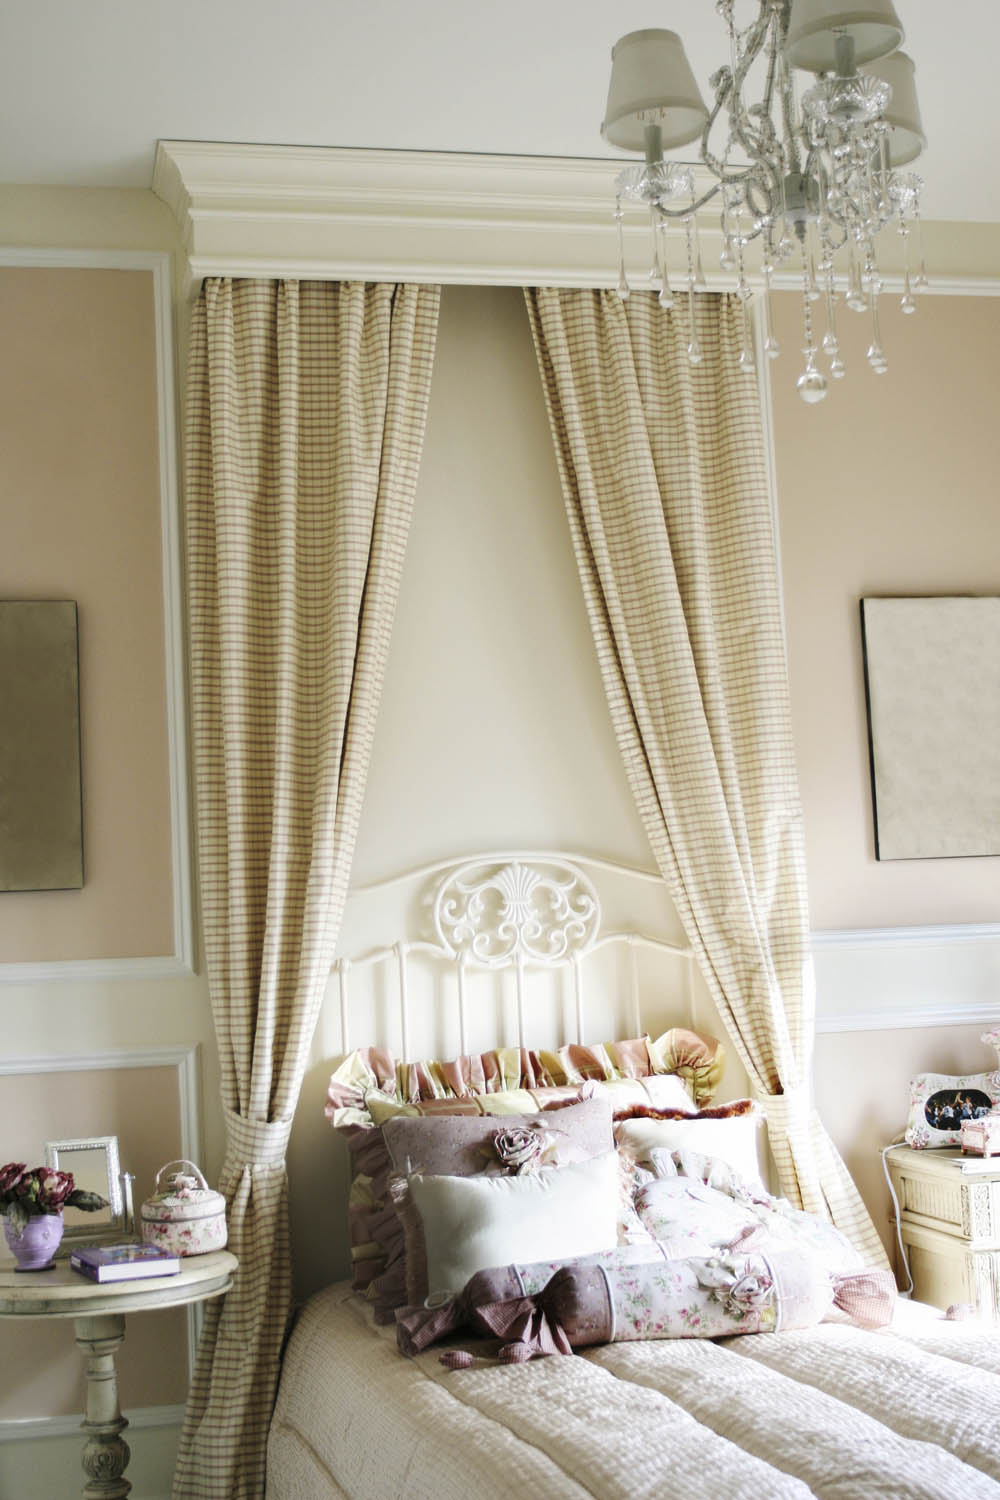 Canopy drapes to enhance an antique iron bed. & Canopy drapes to enhance an antique iron bed | Interior Design ...